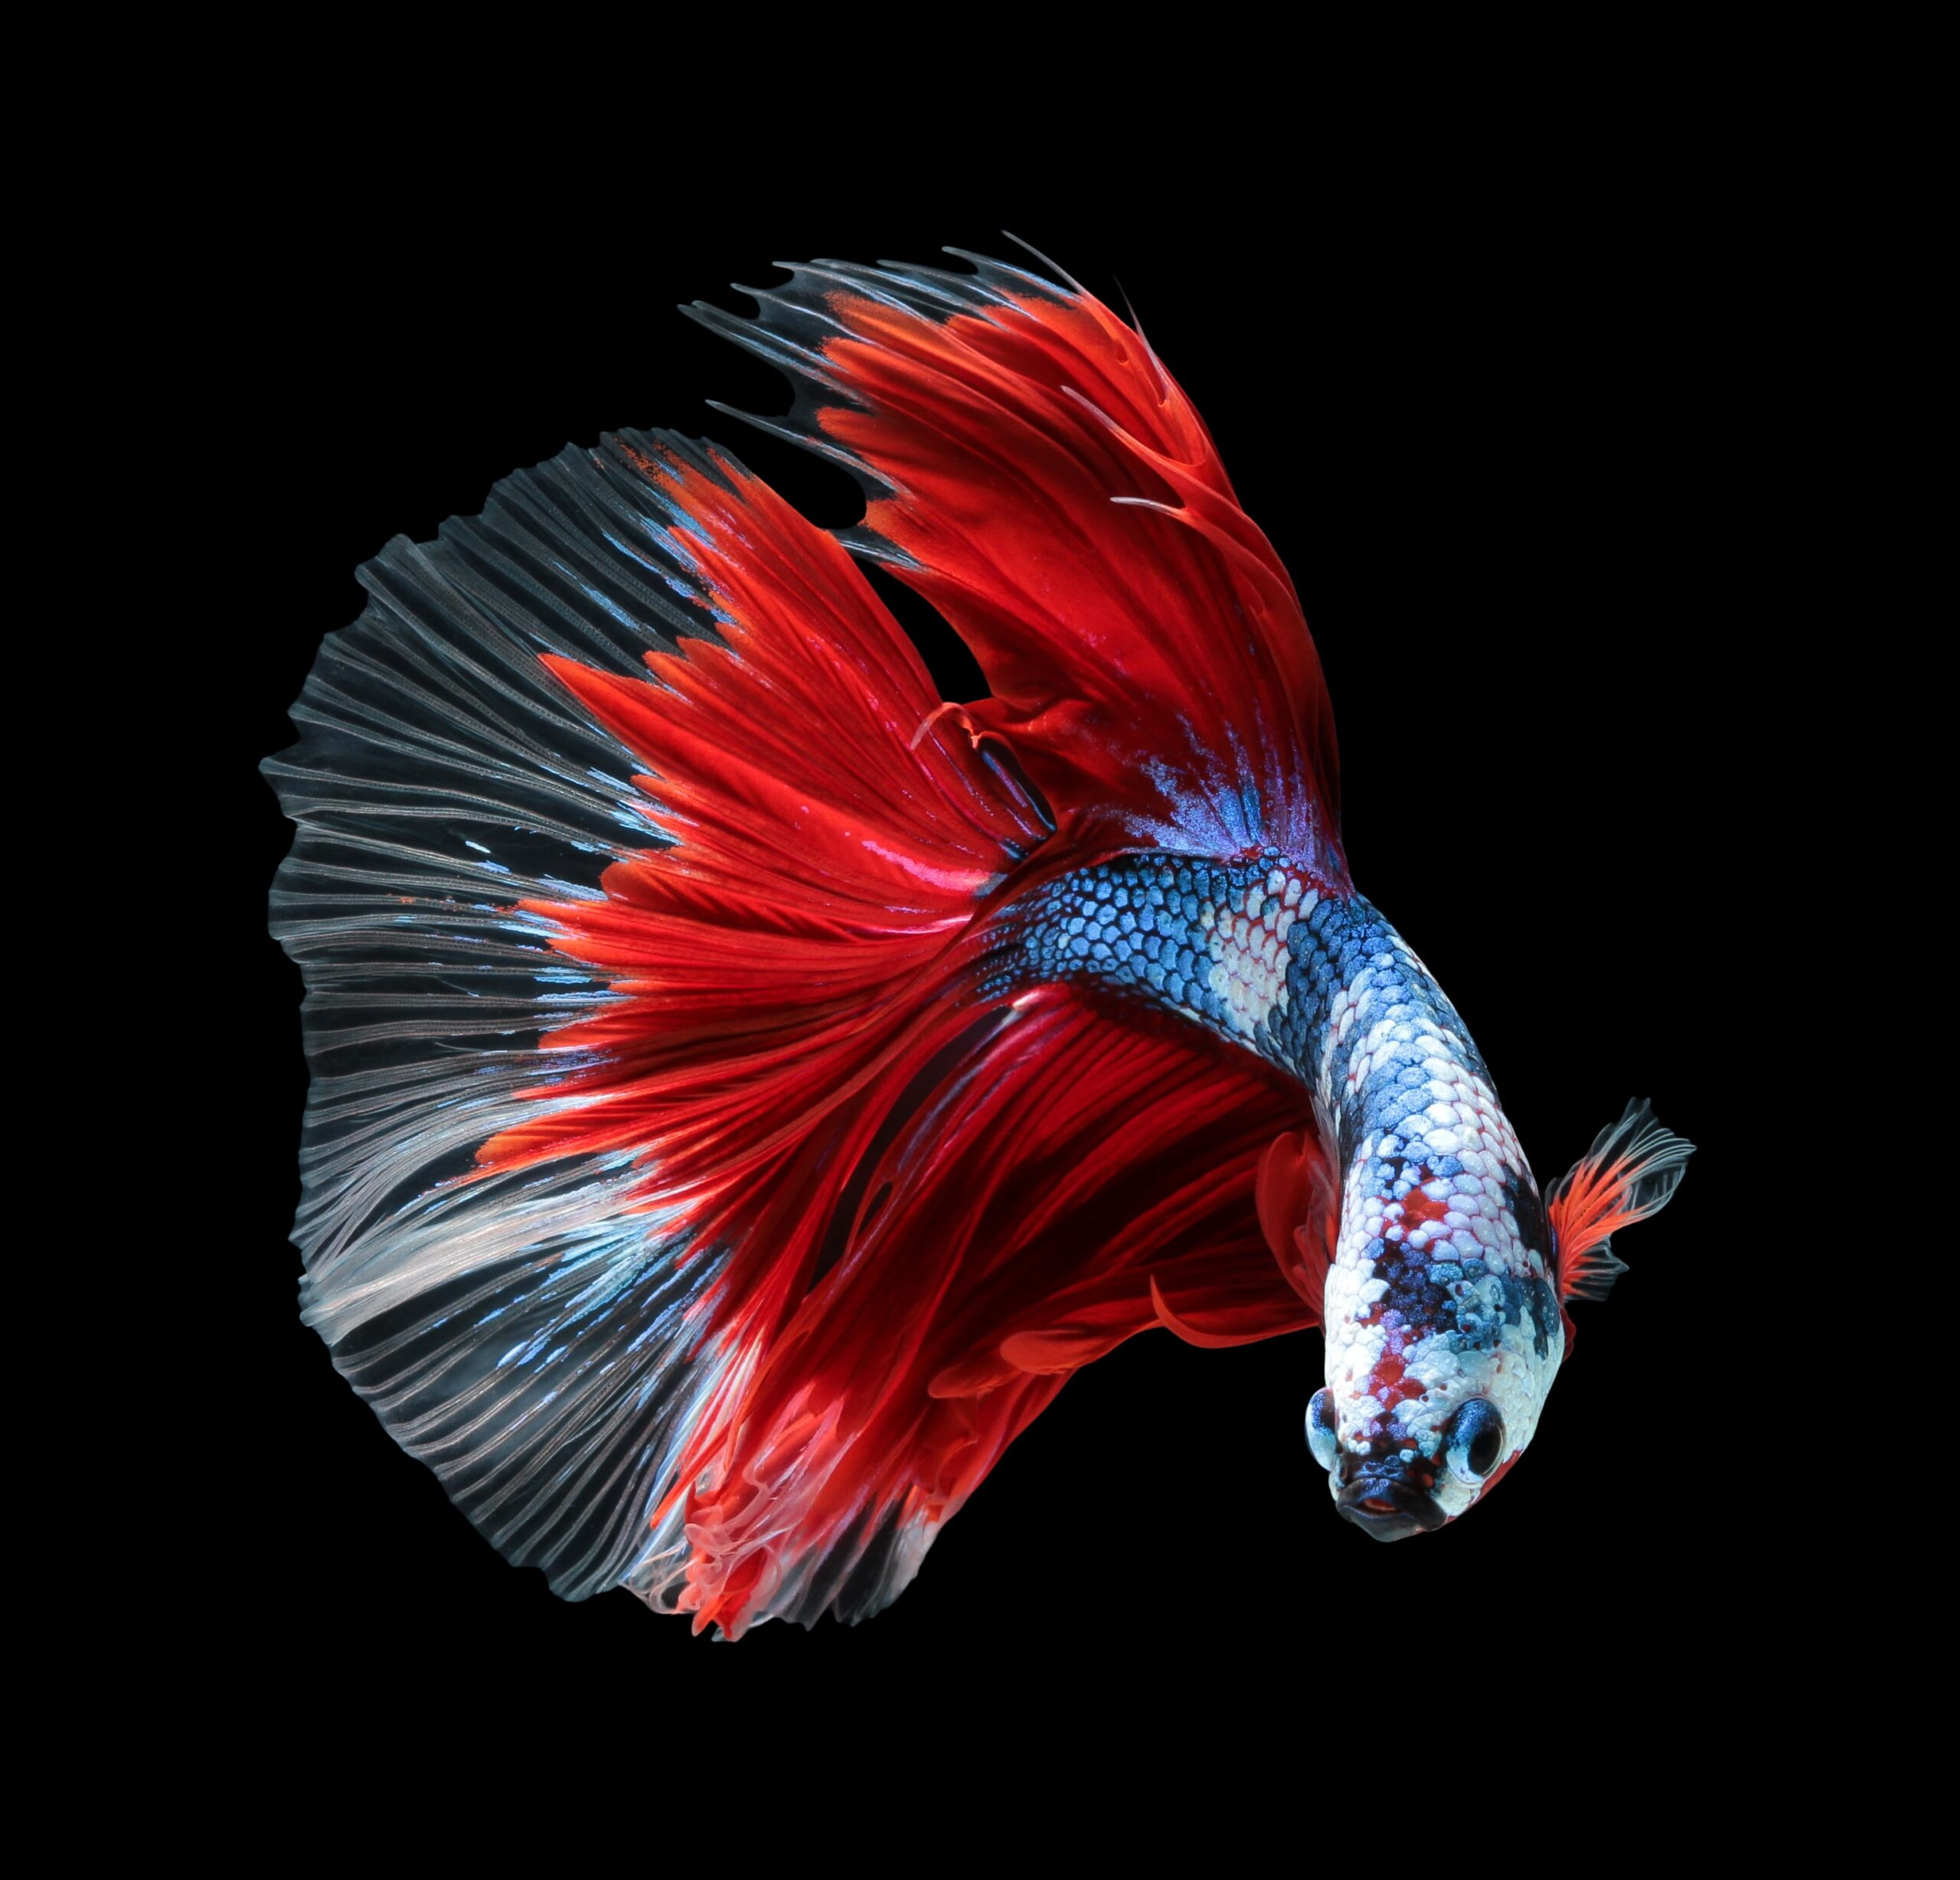 JAPANESE FIGHTING FISH DESIGN